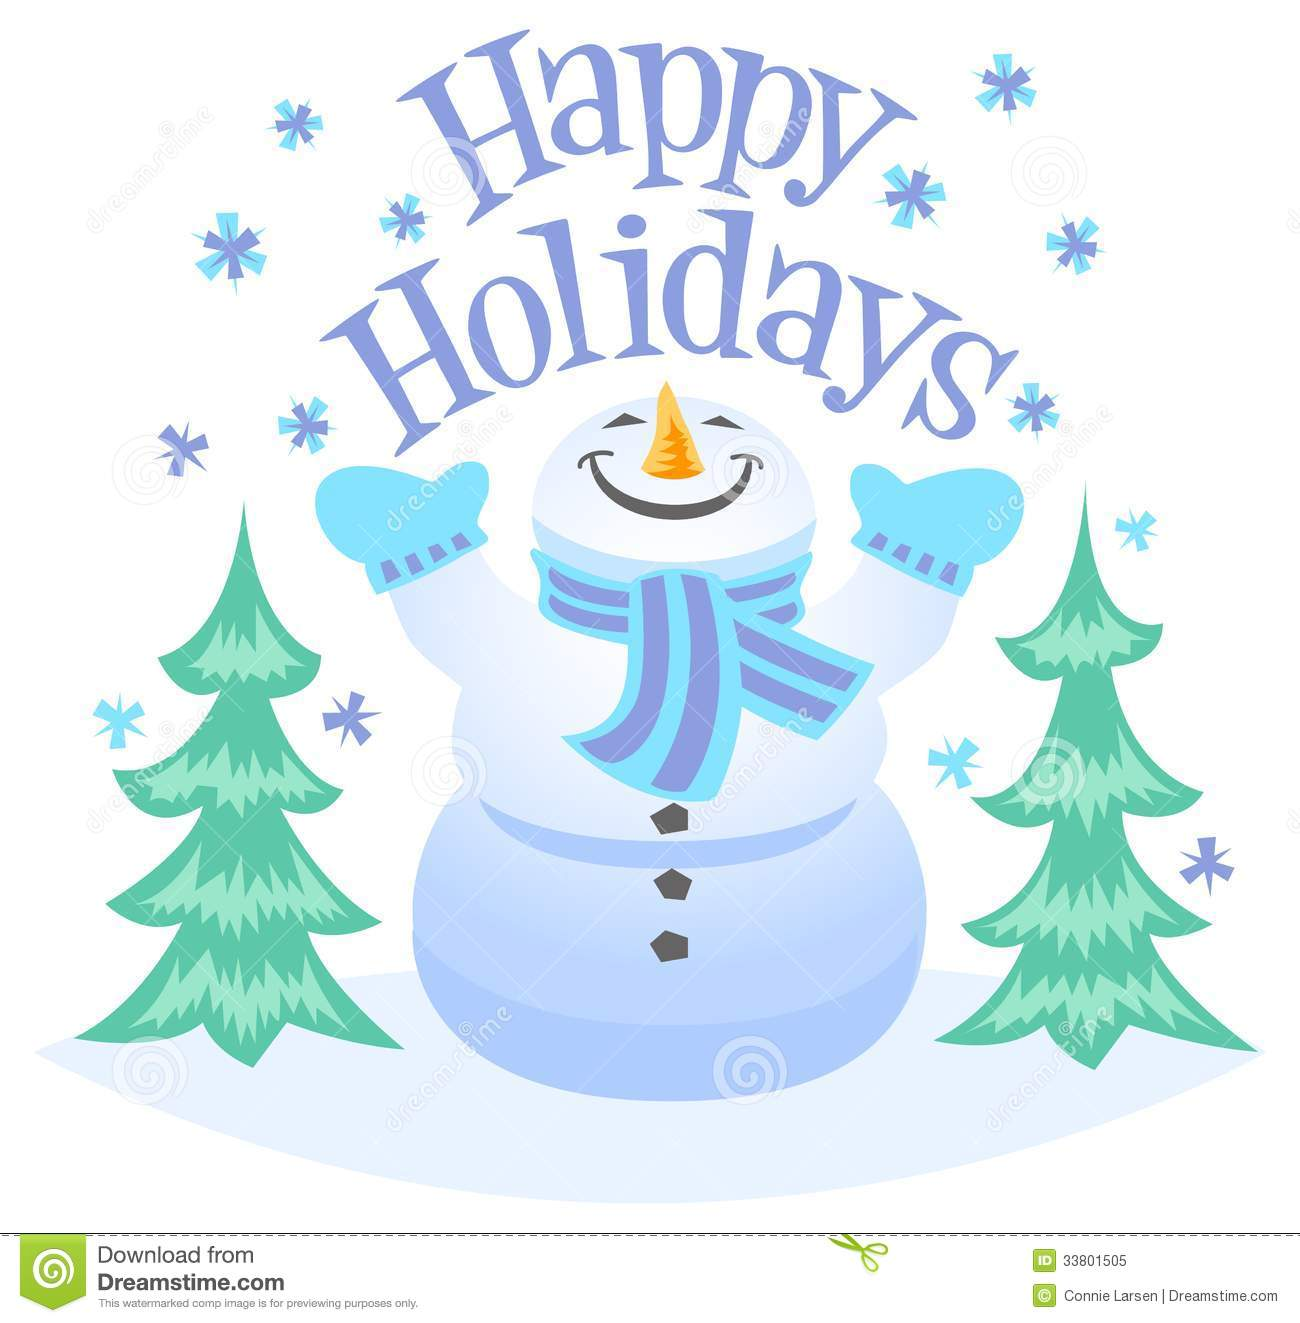 Happy Holidays Snowman Clipart .-Happy Holidays Snowman Clipart .-7